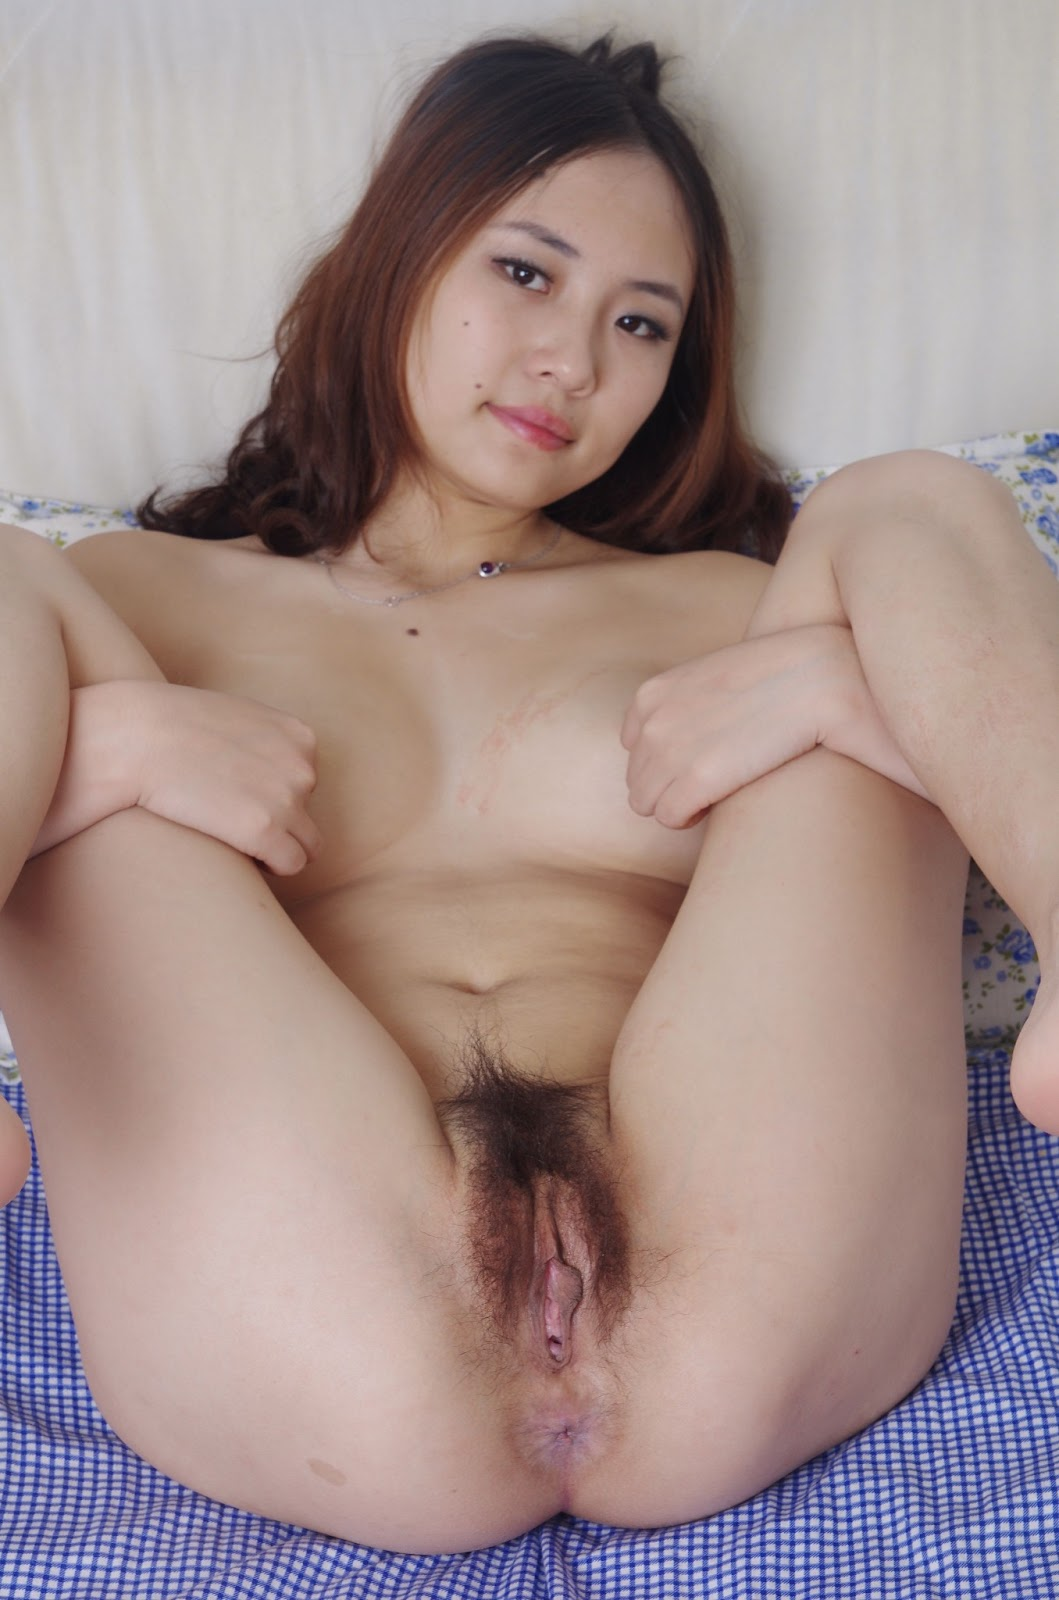 Nude Asian Women Wet